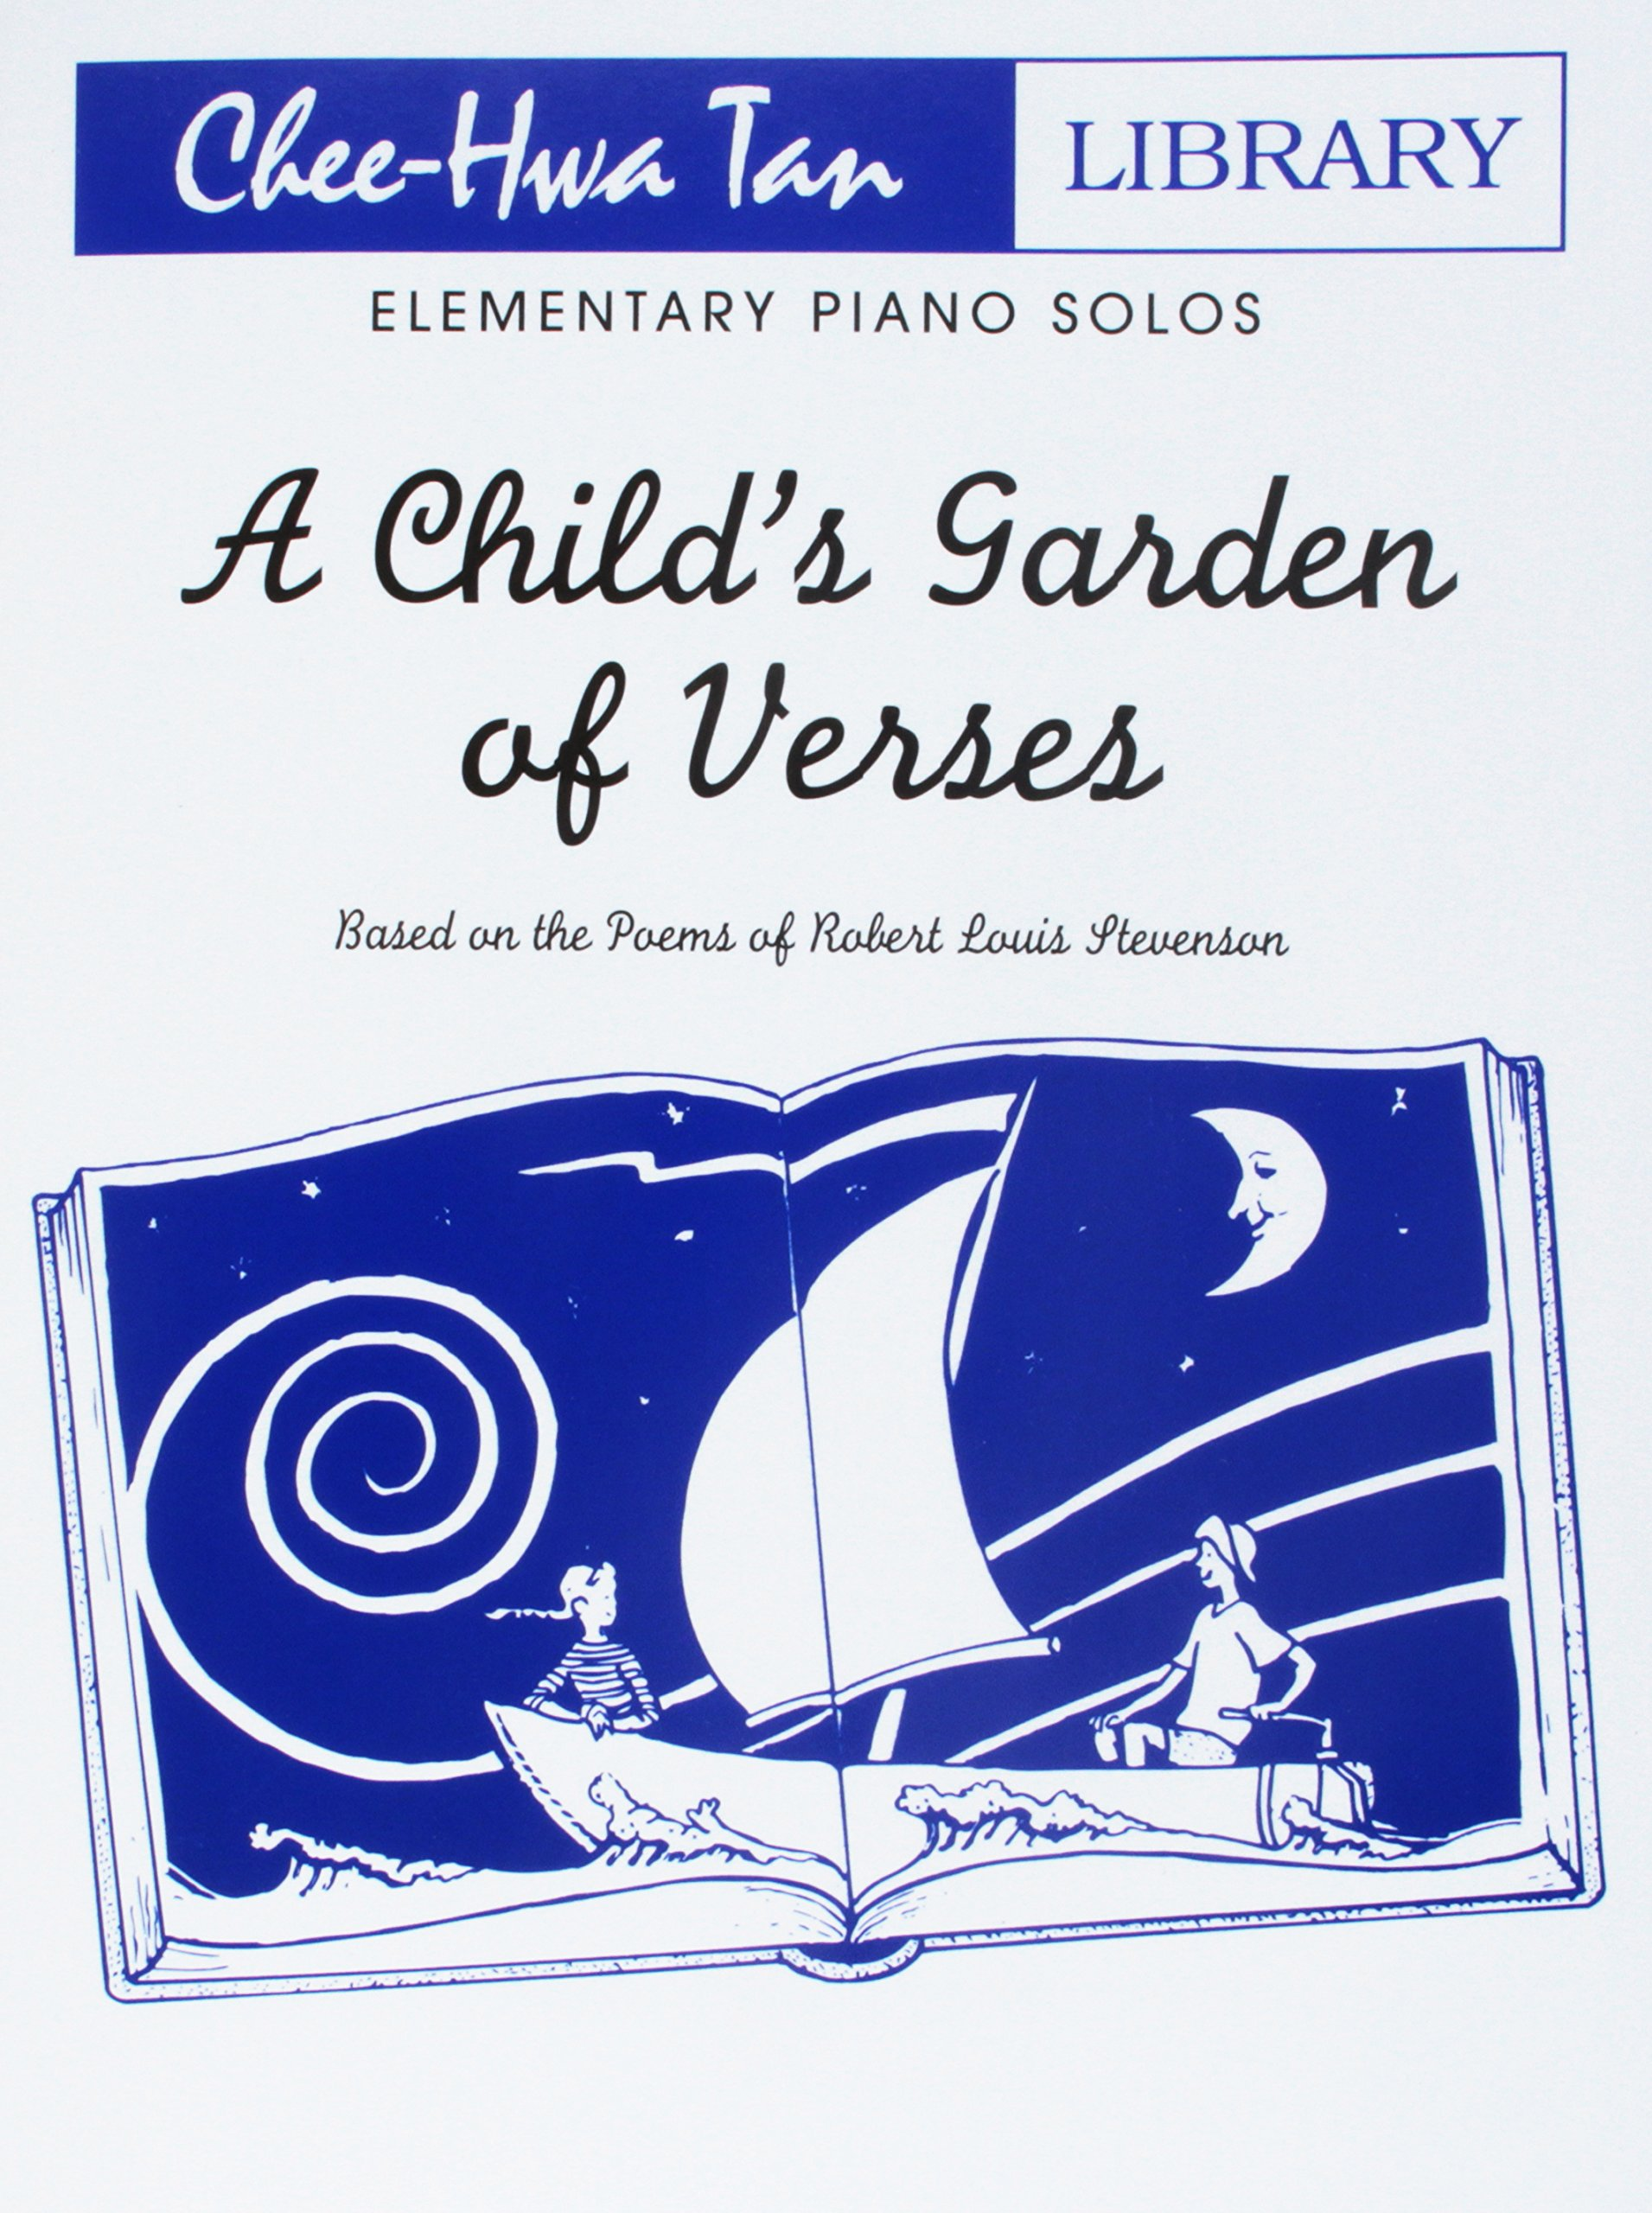 Download HPA04 - Childs Garden of Verses Cheehwa Tan Pian ebook